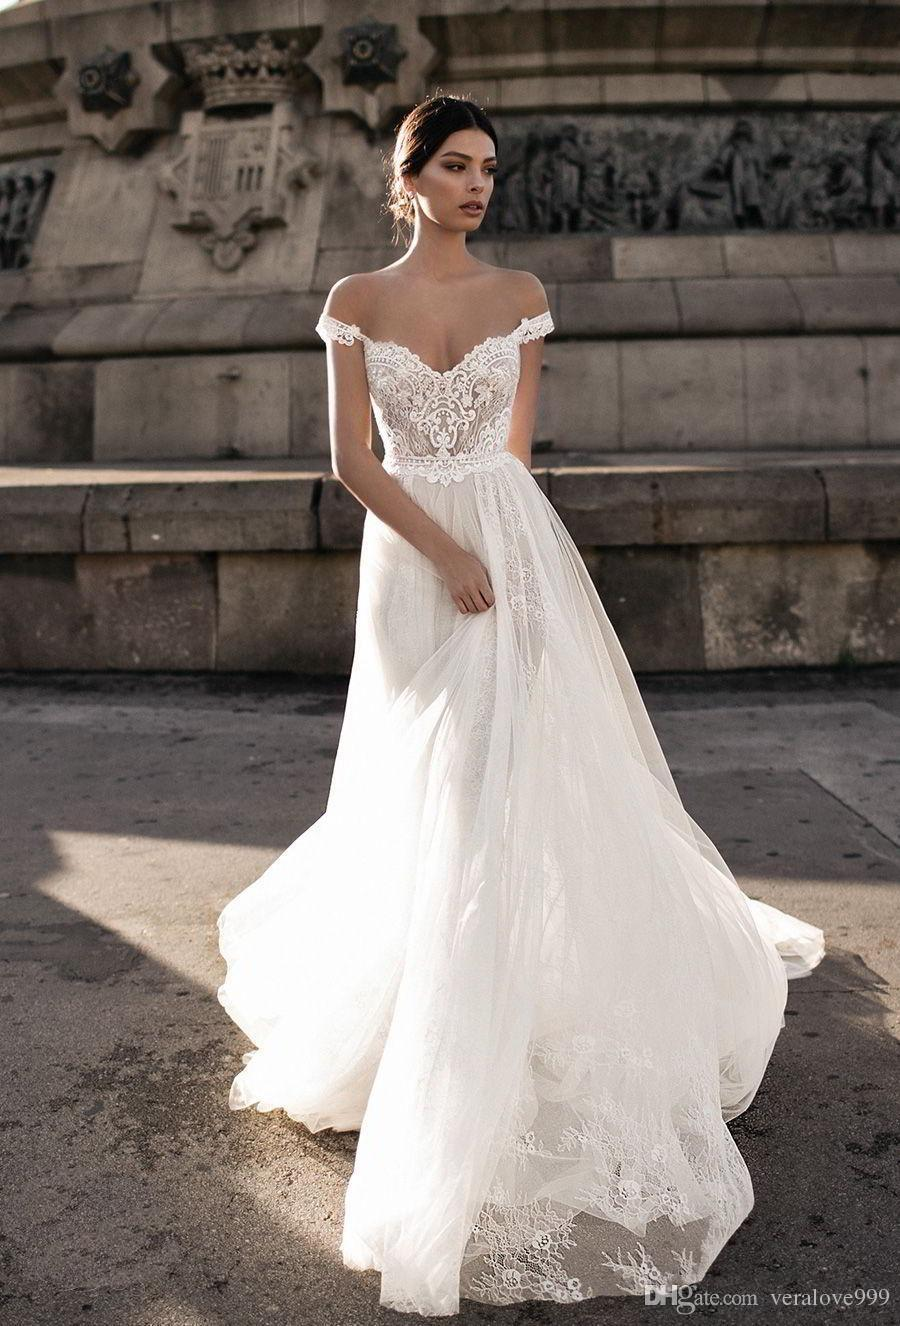 Gali Karten 2019 Sheer Bohemian Wedding Dresses Off the Shoulder Lace Illusion Bodice Tulle Sweep Train Backless Bridal Gowns